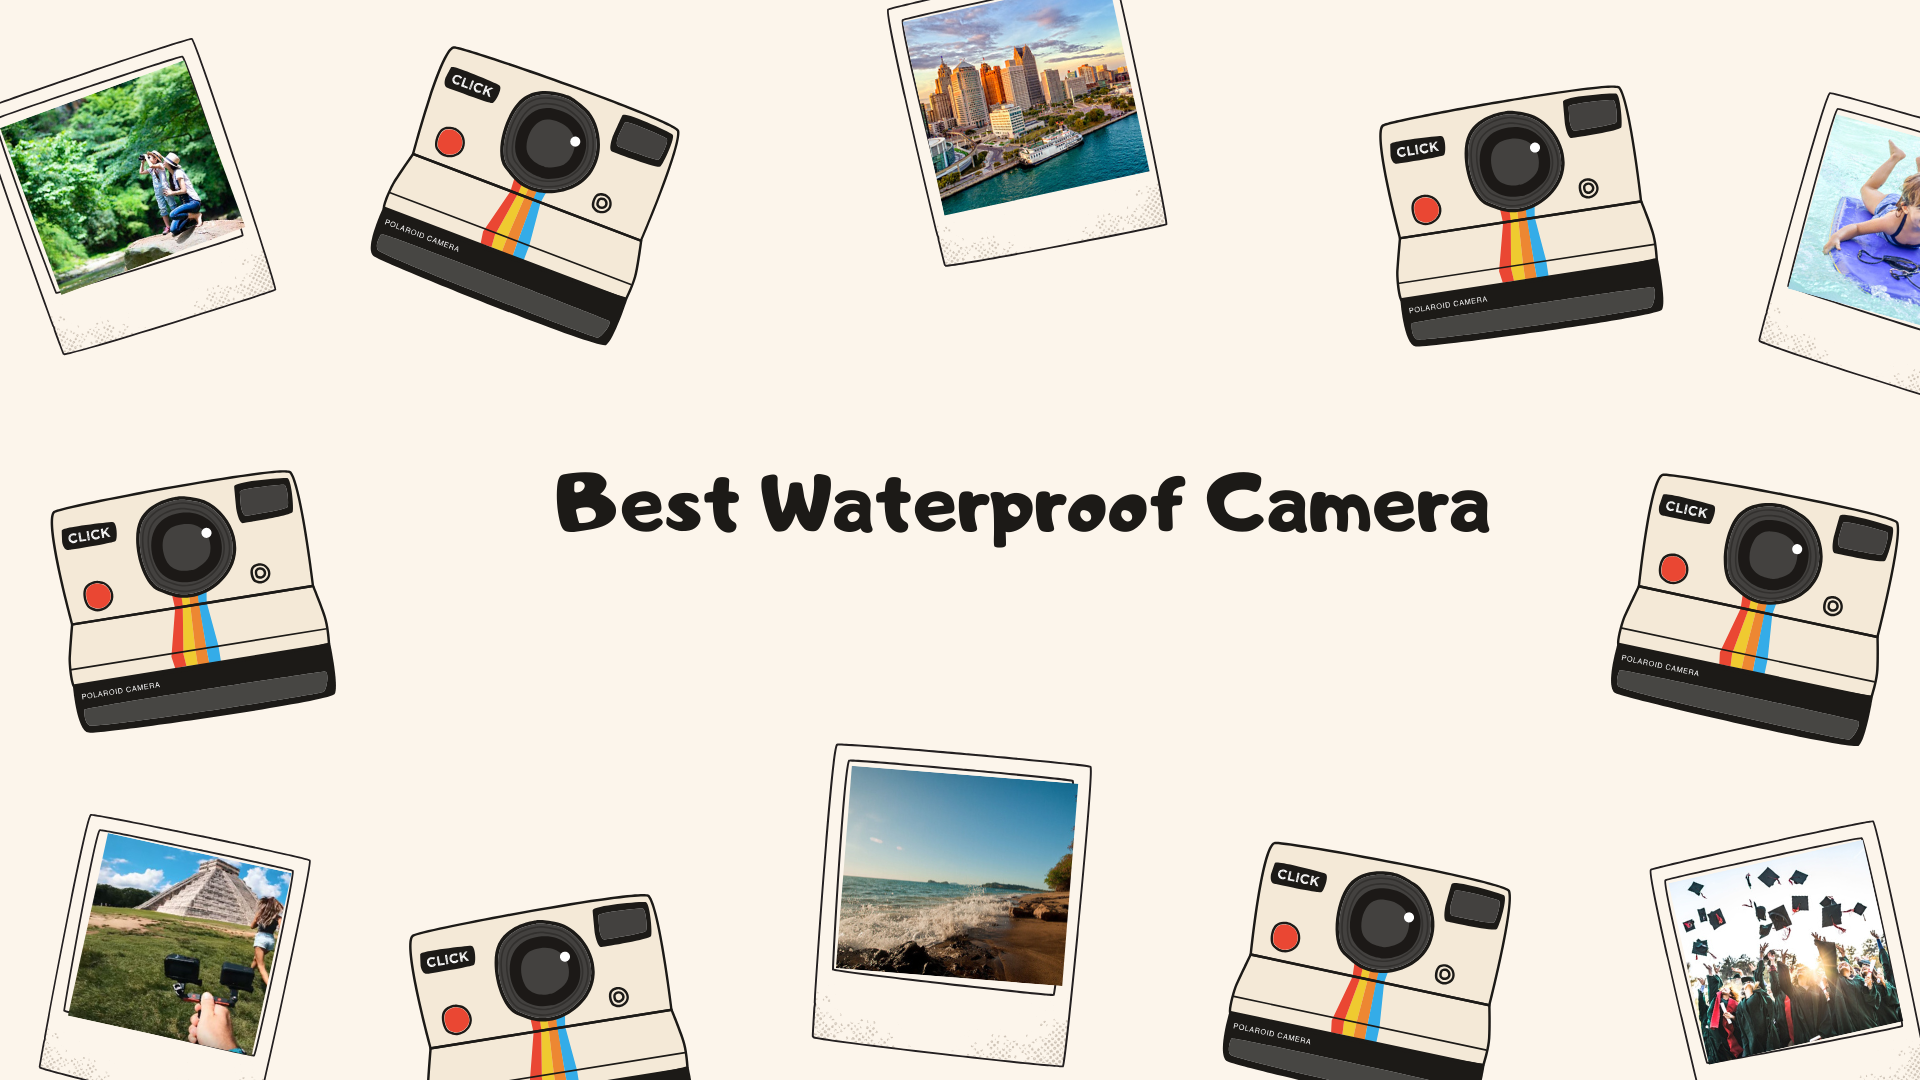 Top 10 Best Waterproof Camera In 2020 Reviews